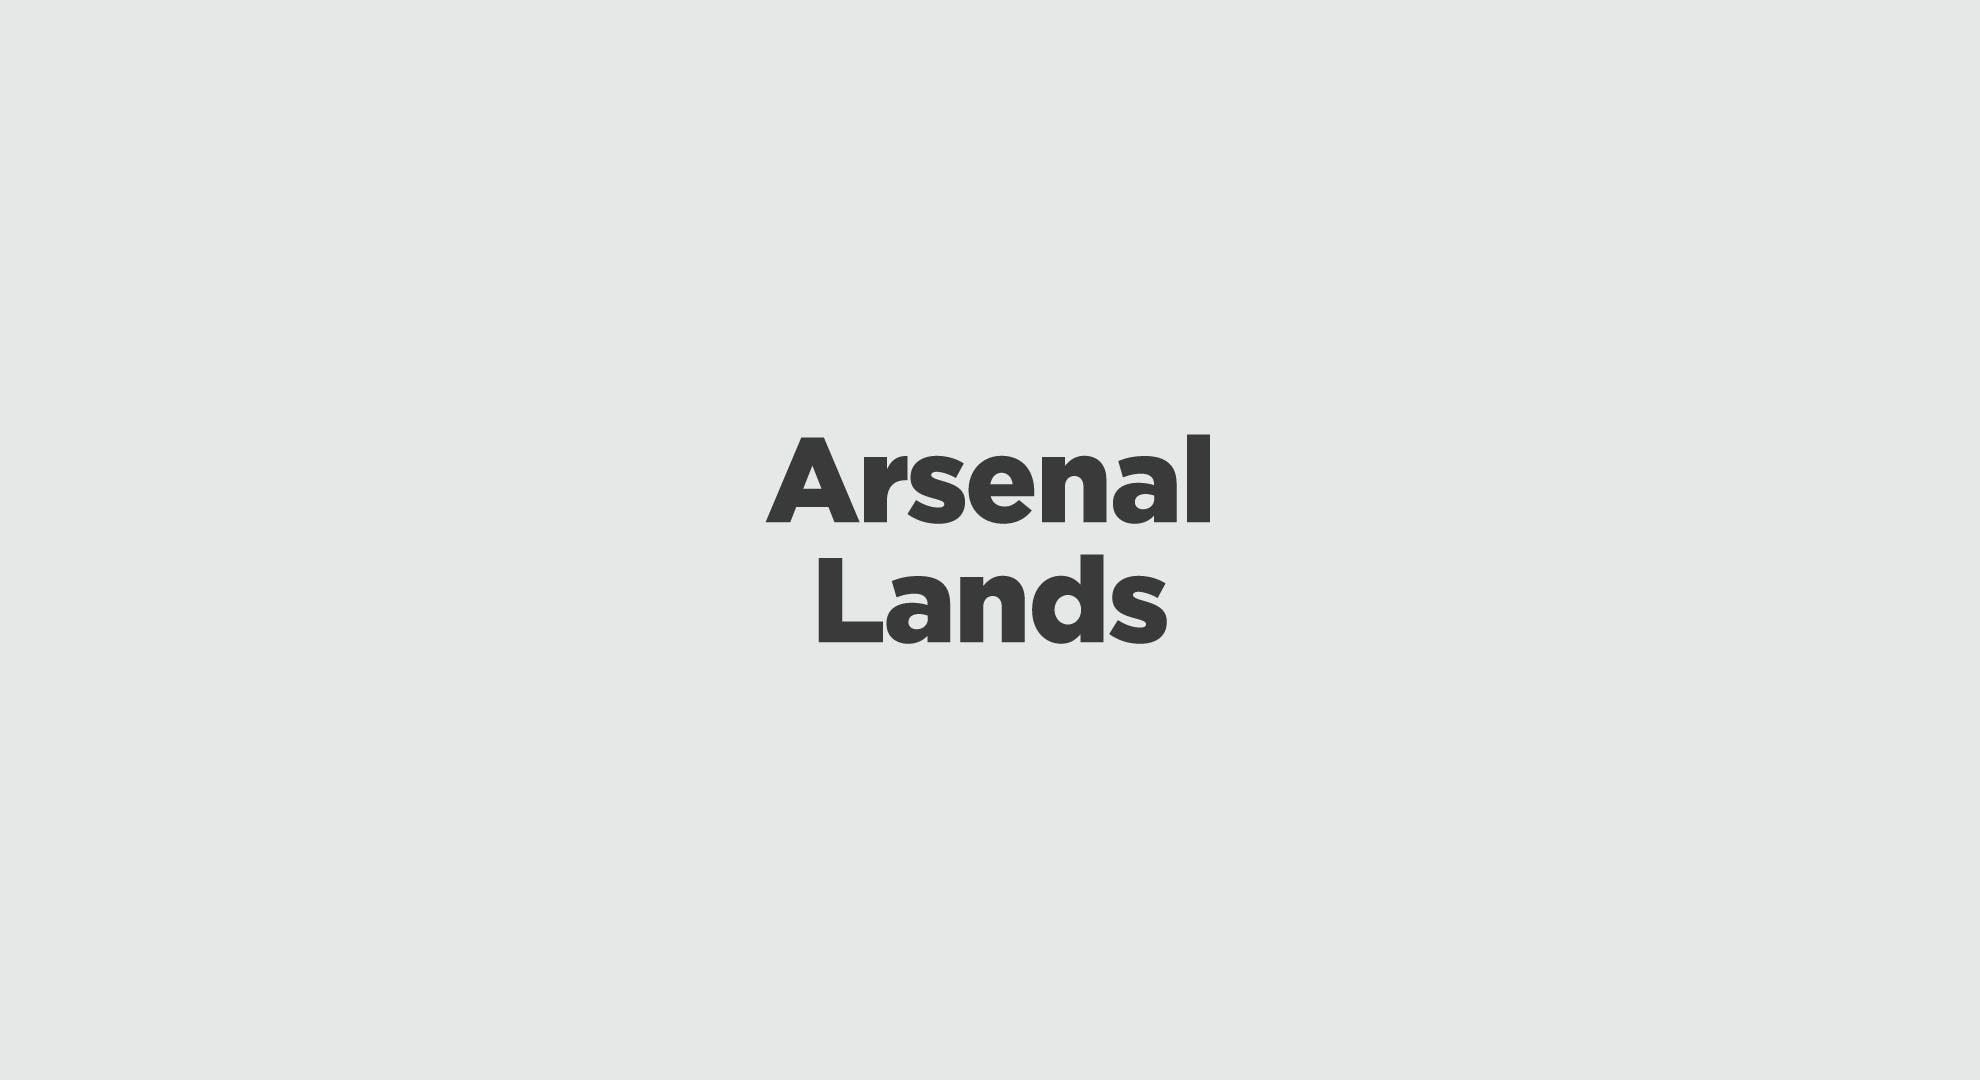 Arsenal Lands